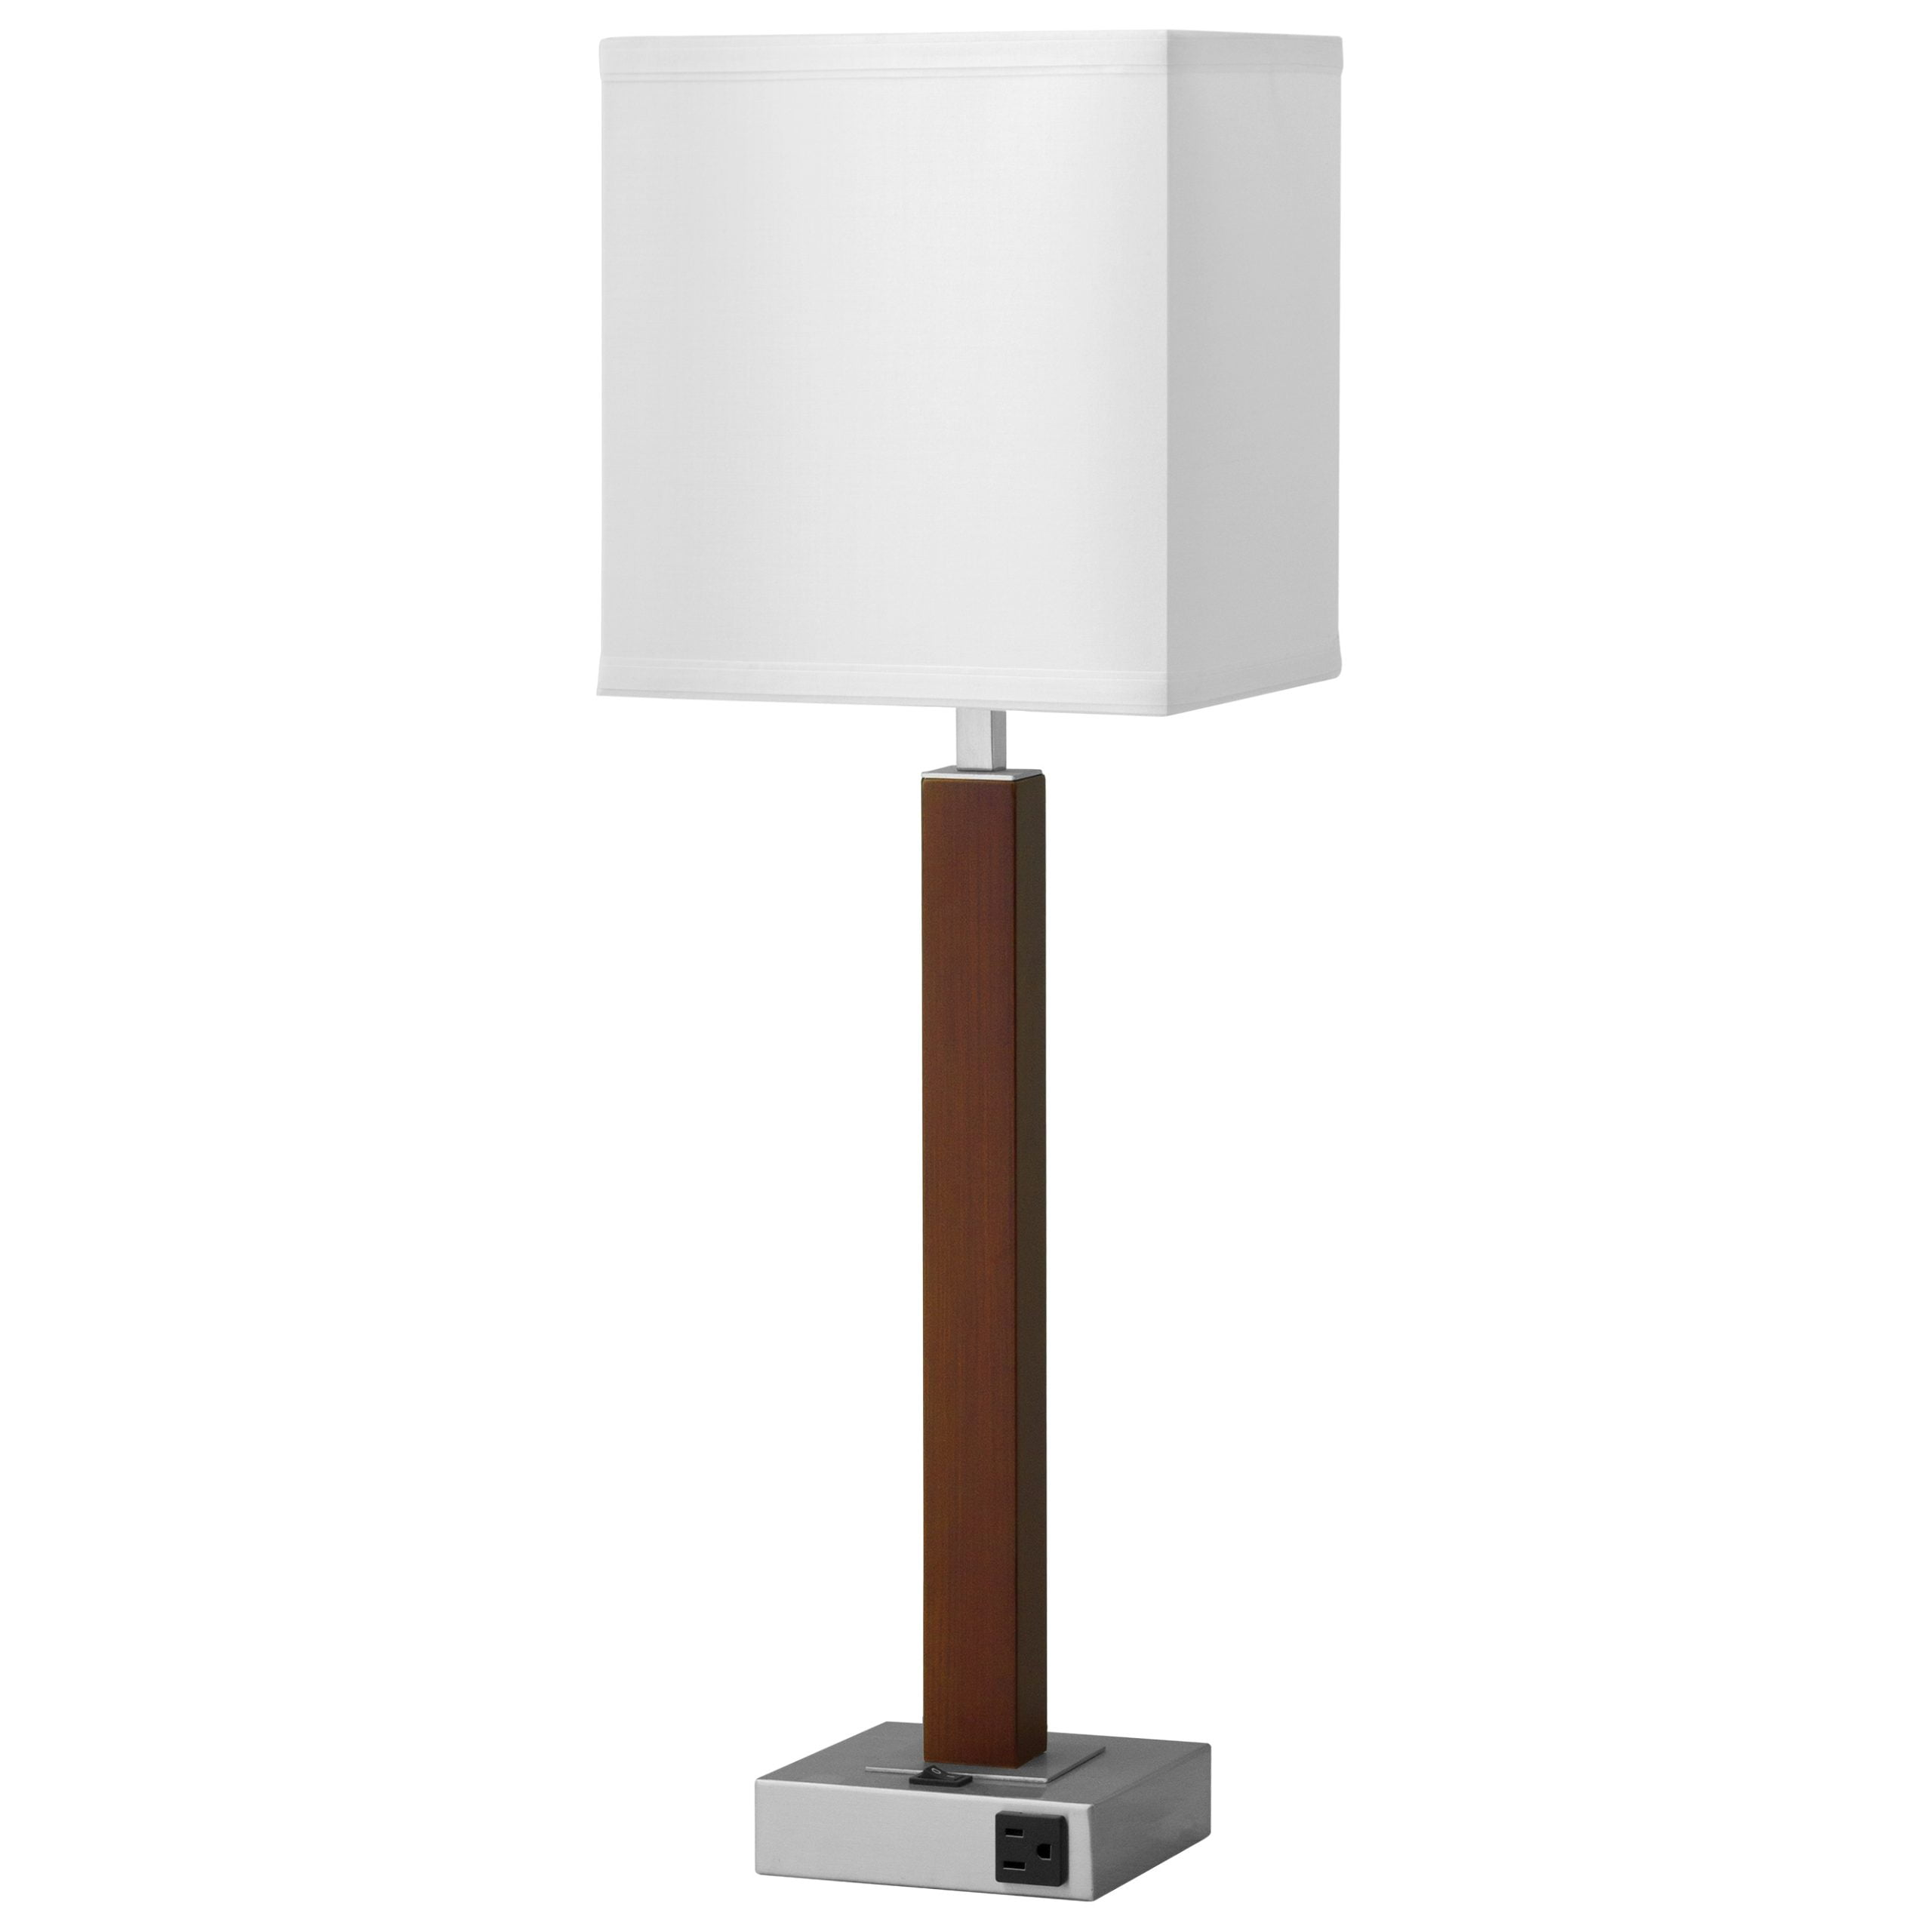 Calibri Single Table Lamp with 1 Outlet